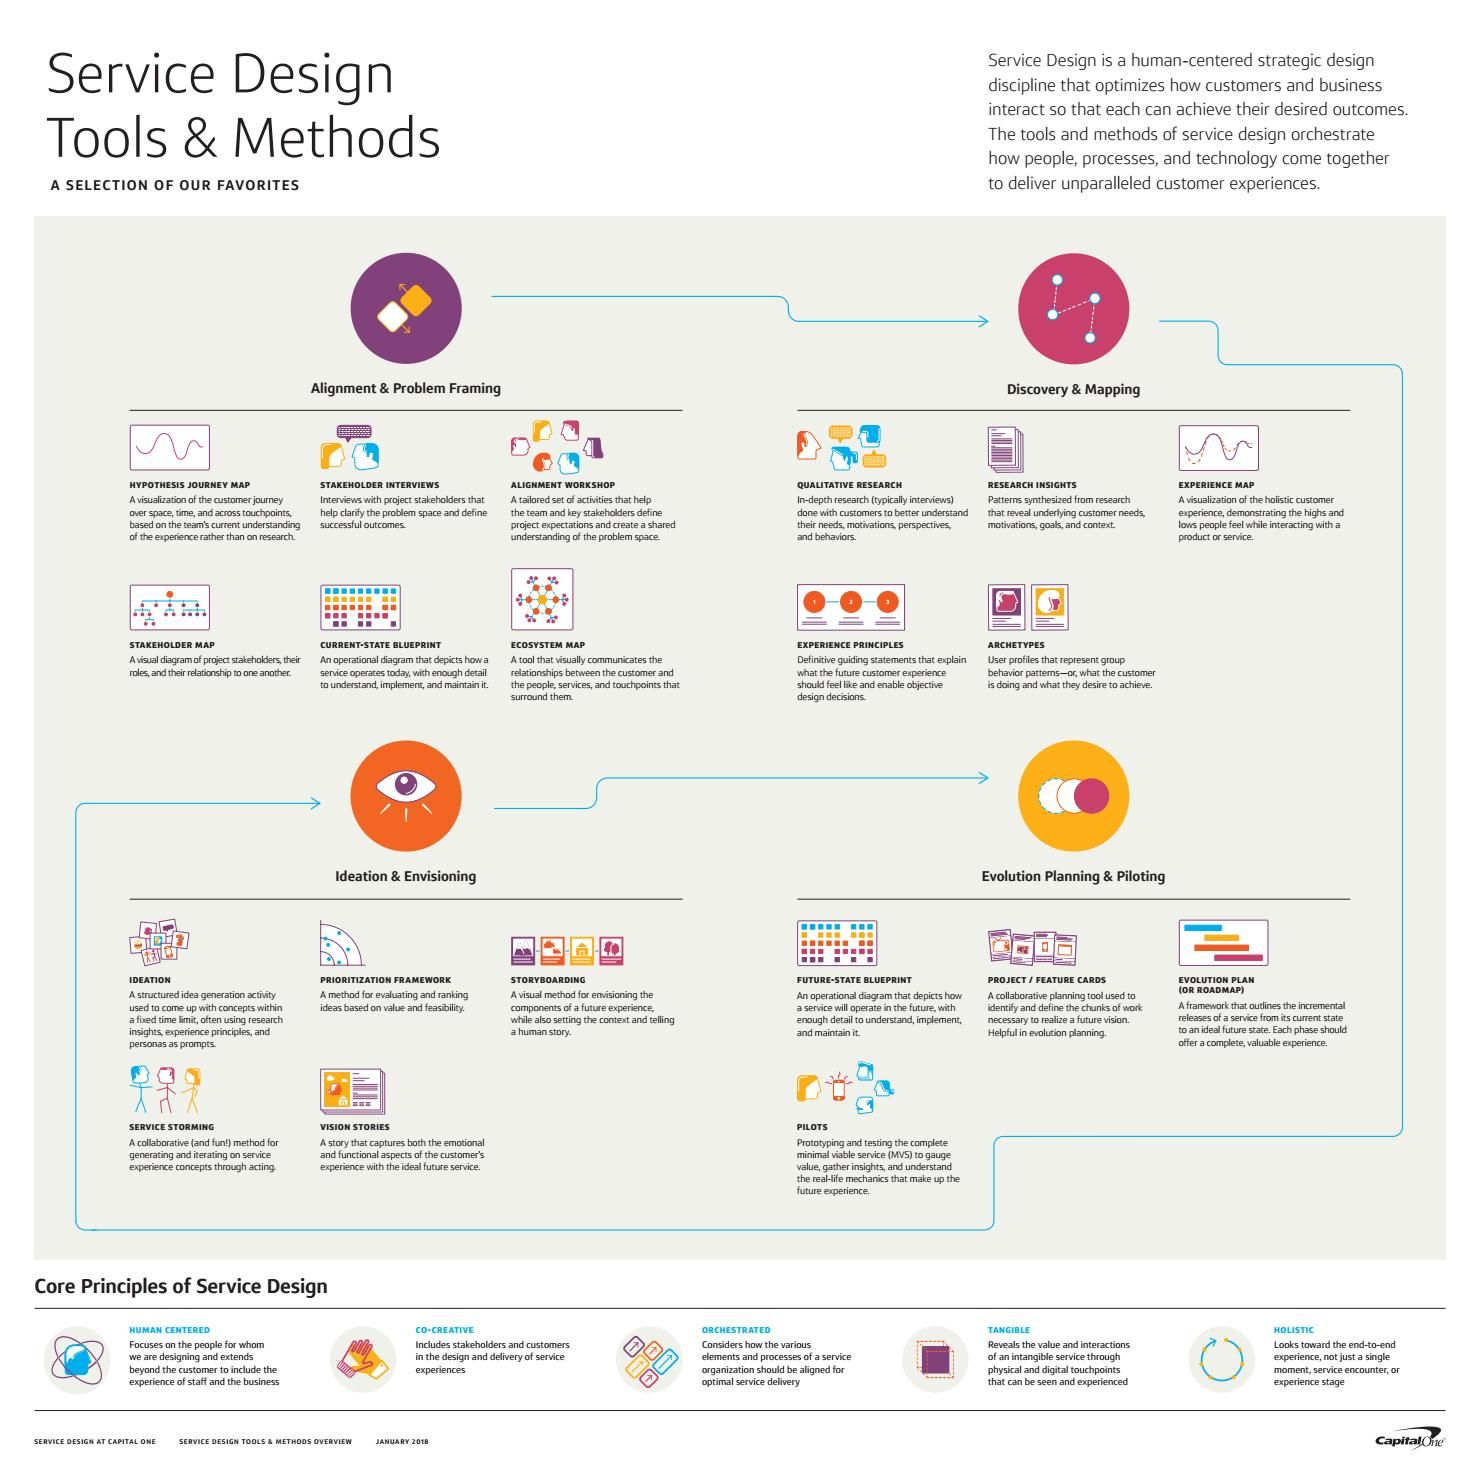 Service Design Tools and Methods Overview Poster Lp デザイン